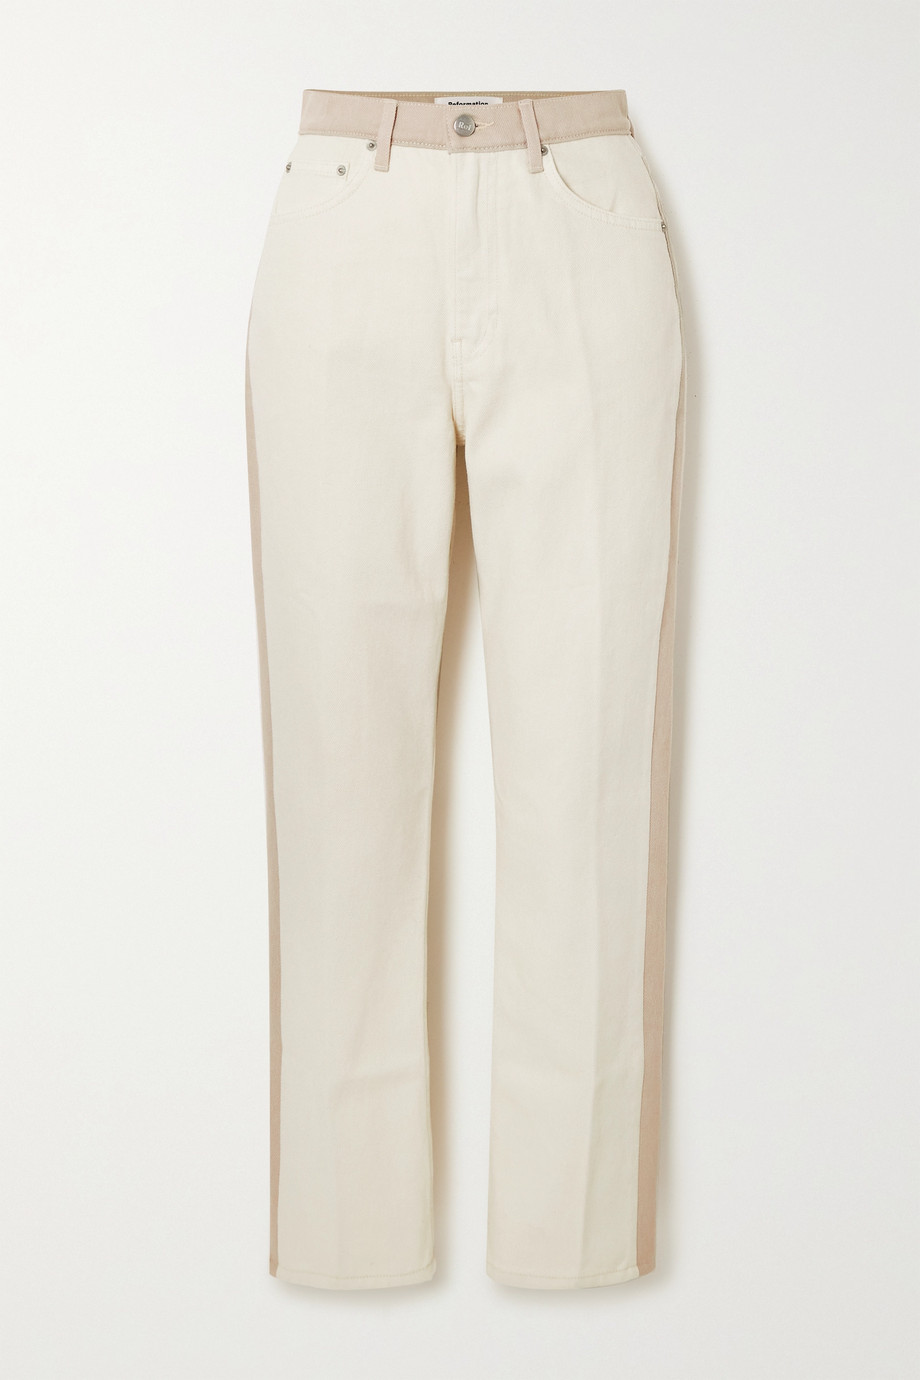 Reformation + NET SUSTAIN Cynthia cropped two-tone organic high-rise straight-leg jeans